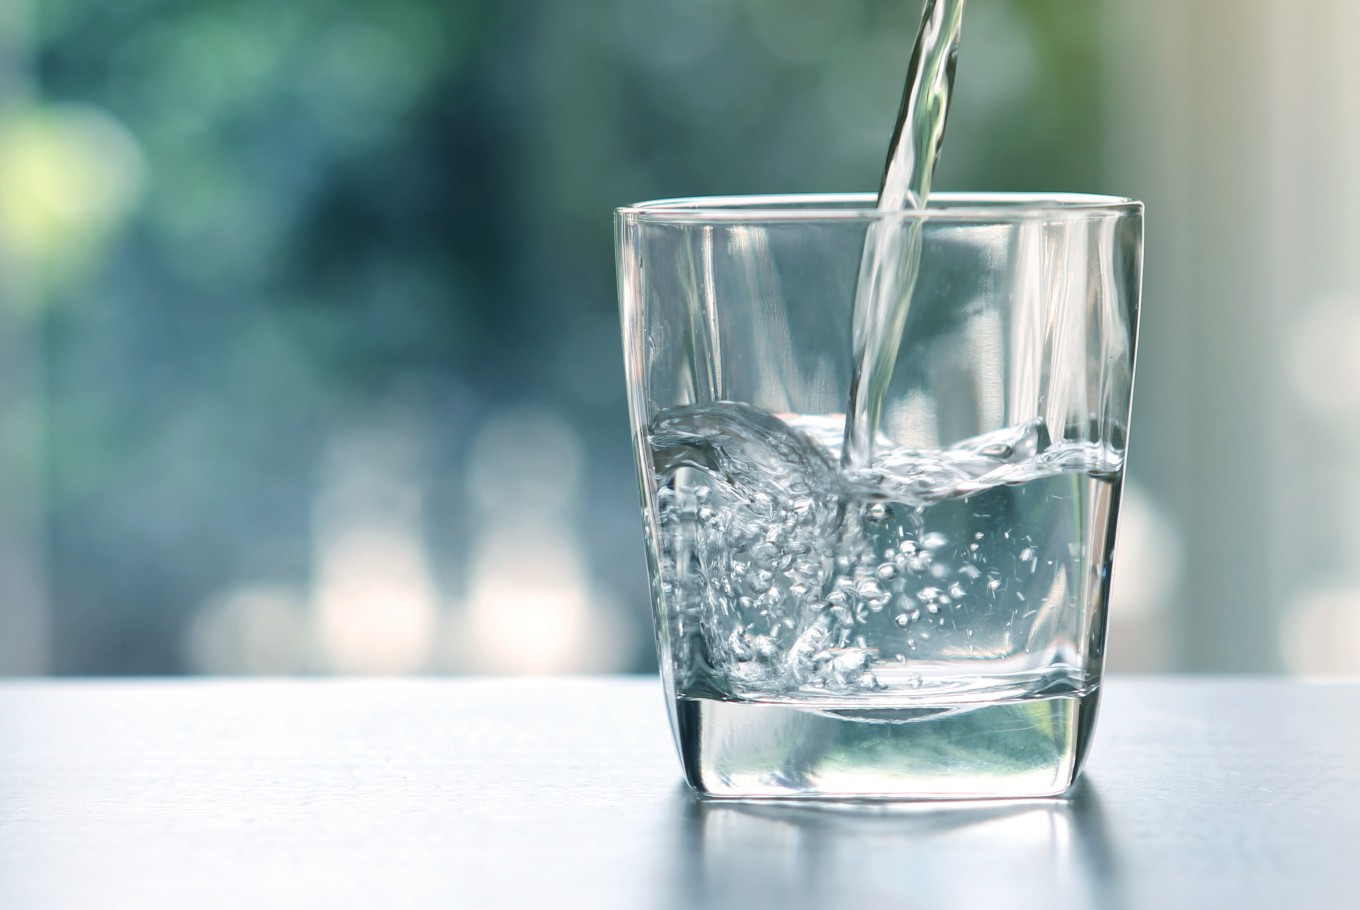 A glass of water Description automatically generated